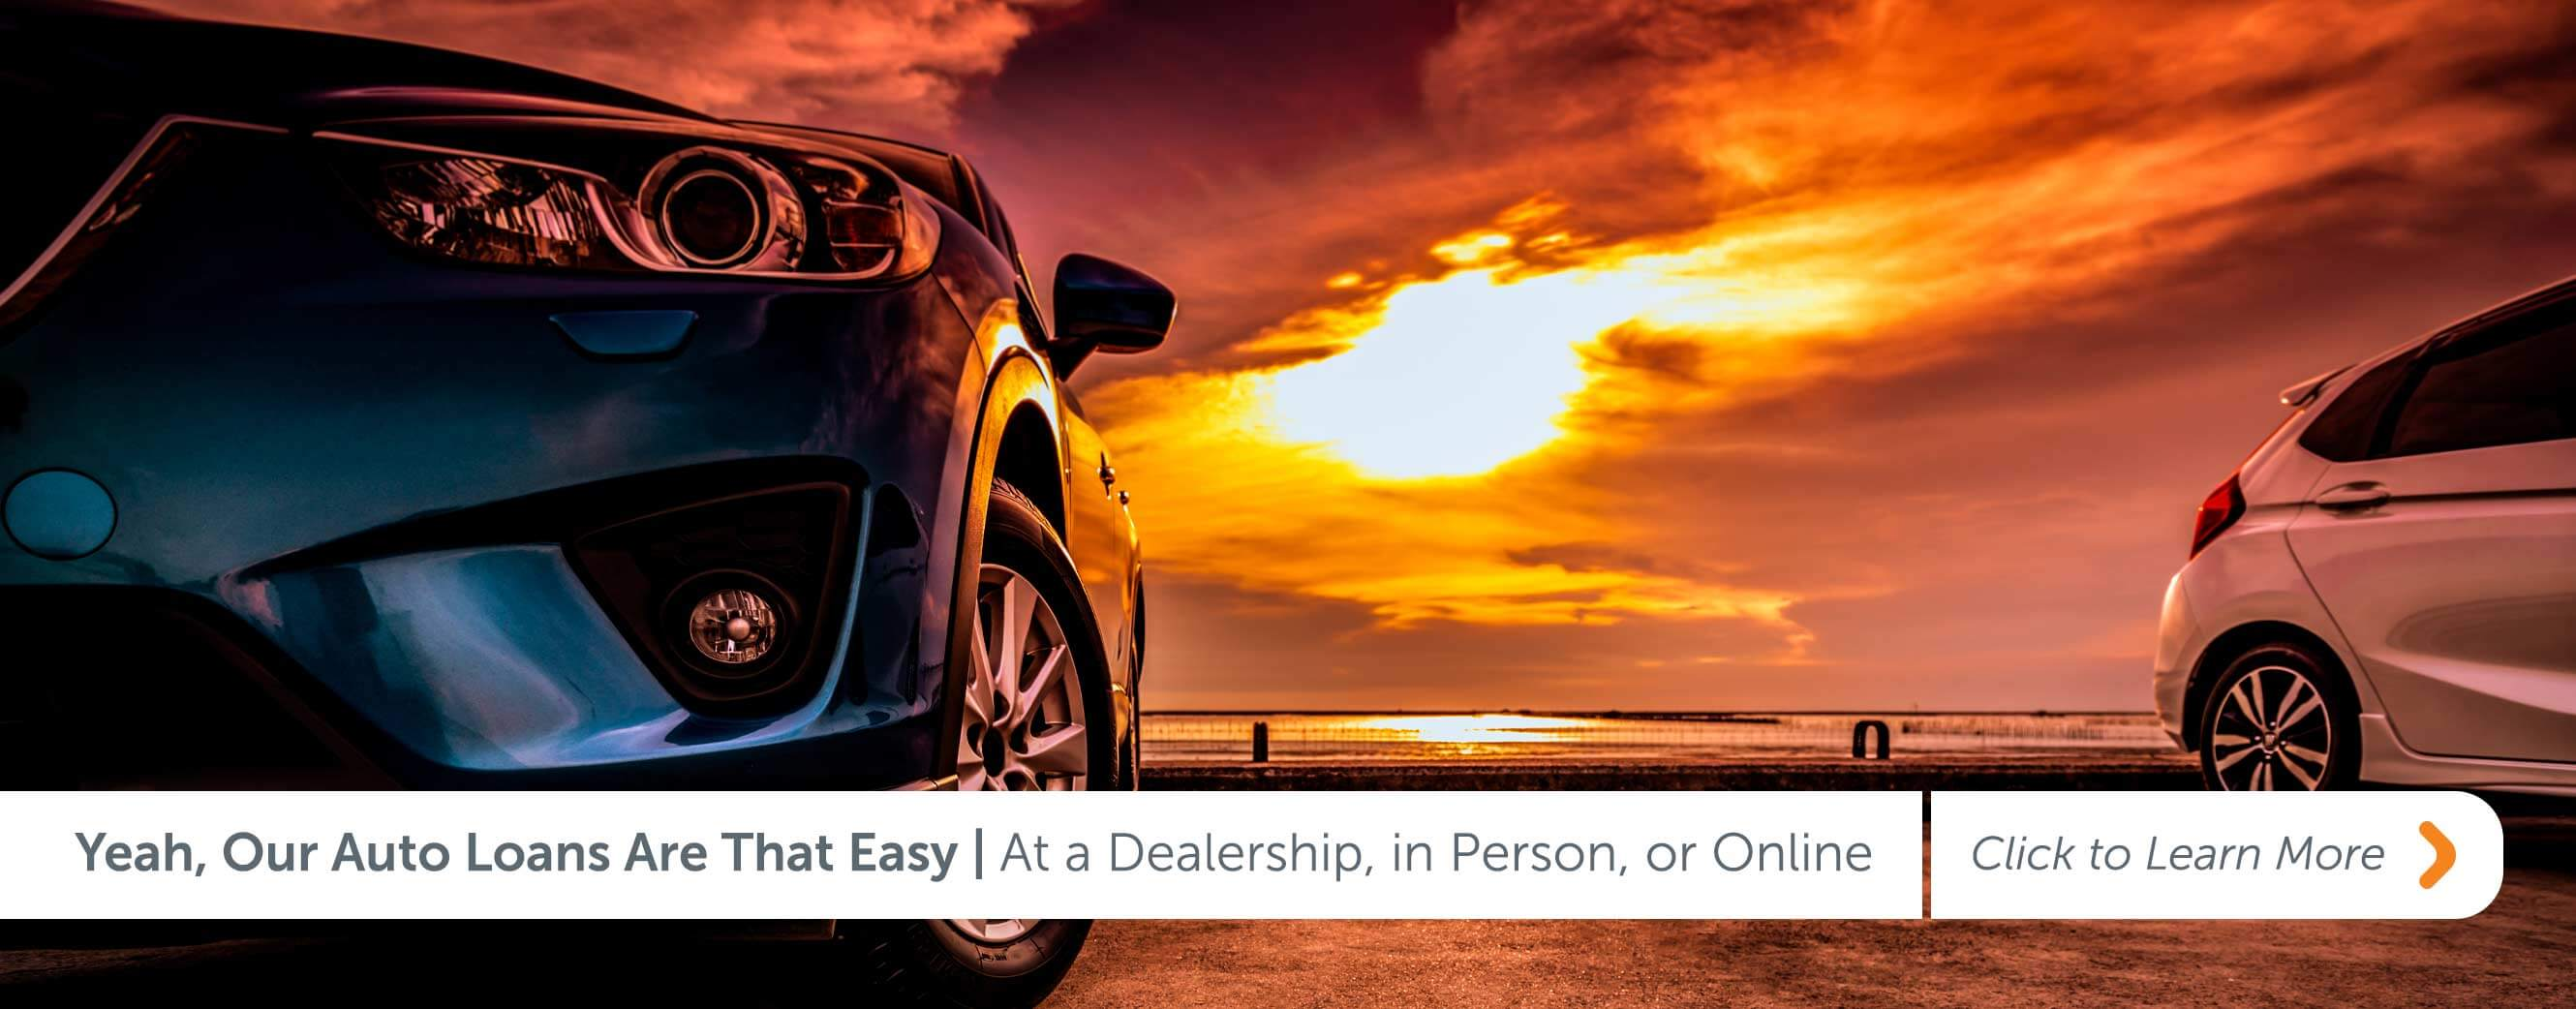 Yeah, Our Auto Loans Are That Easy At a Dealership, in Person, or Online Click to Learn More